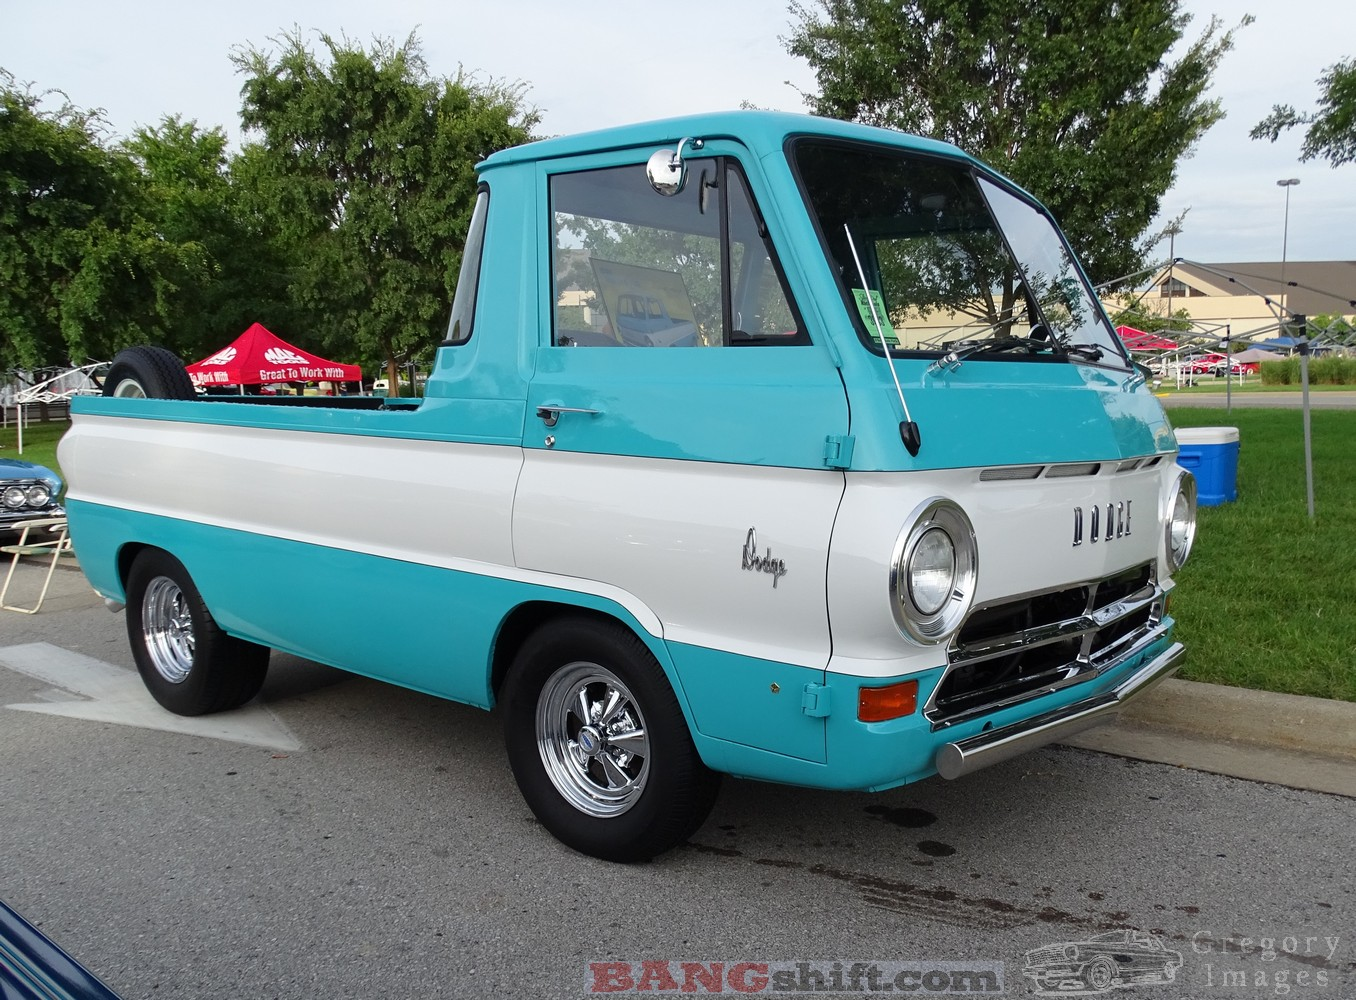 Truckin' On Down The Line: One Last Collection Of Cool Trucks At The 2016 NSRA Nationals